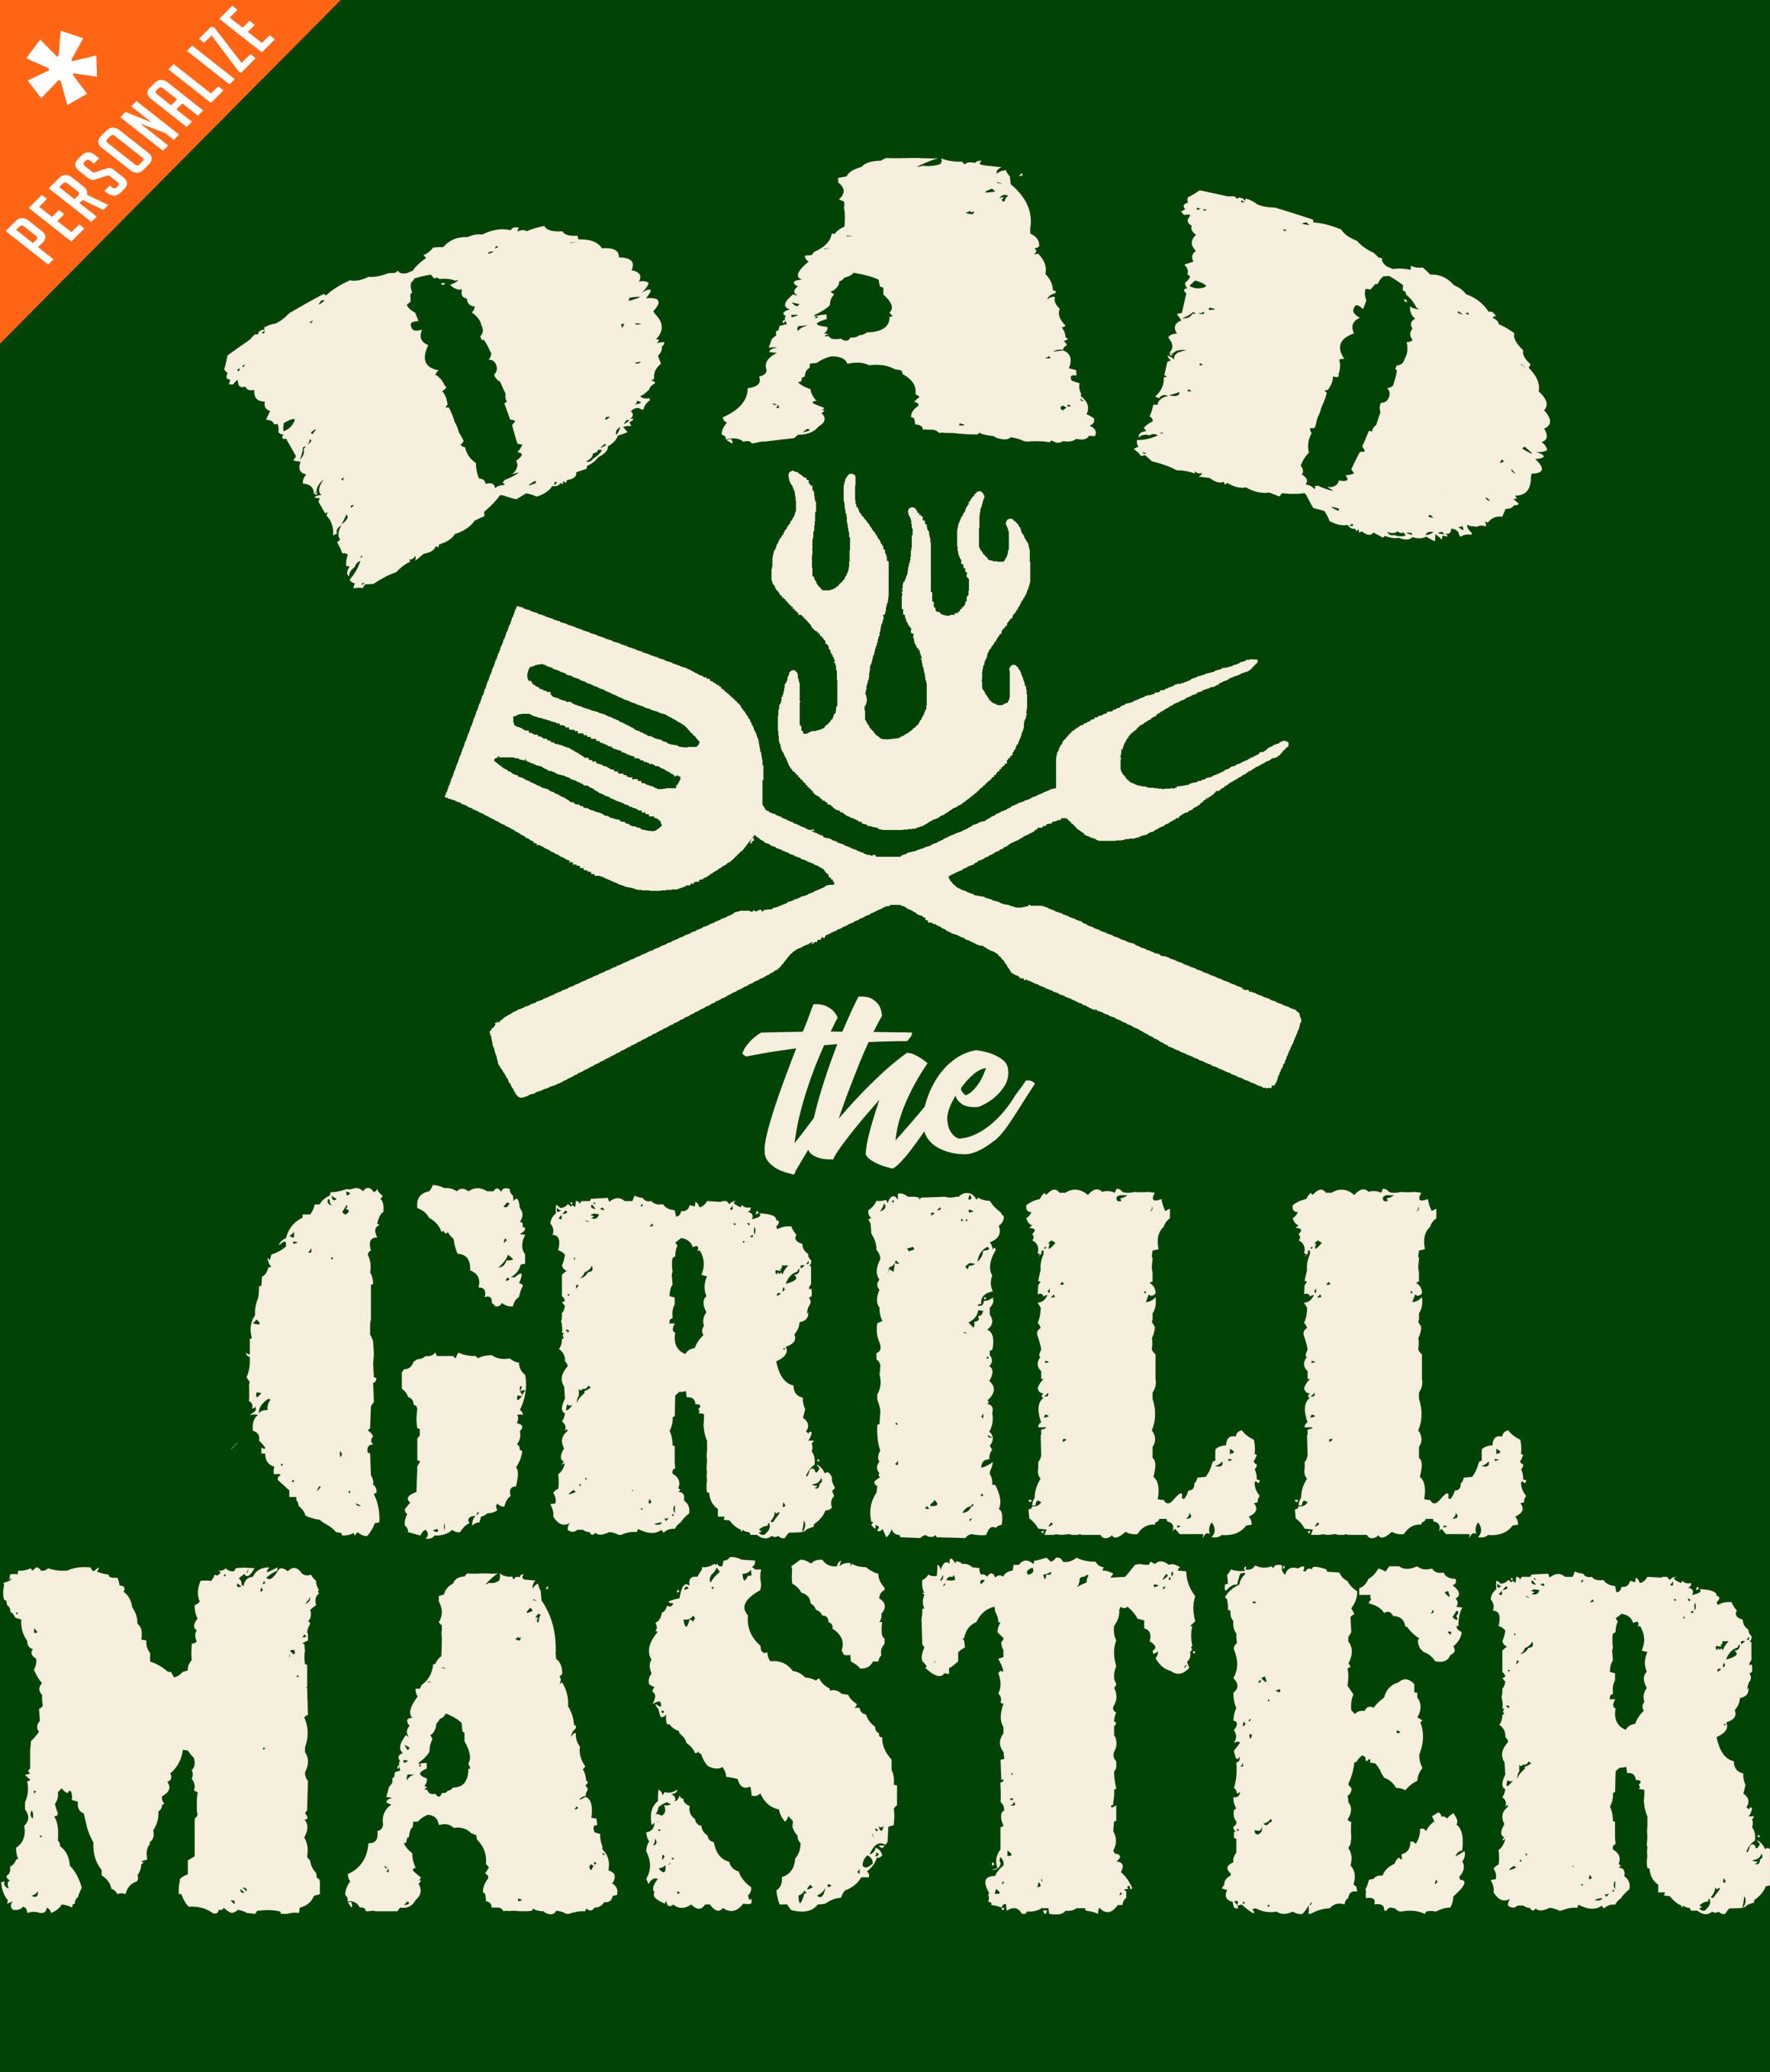 PERSONALIZED GRILLMASTER T-SHIRT DESIGN CLOSEUP